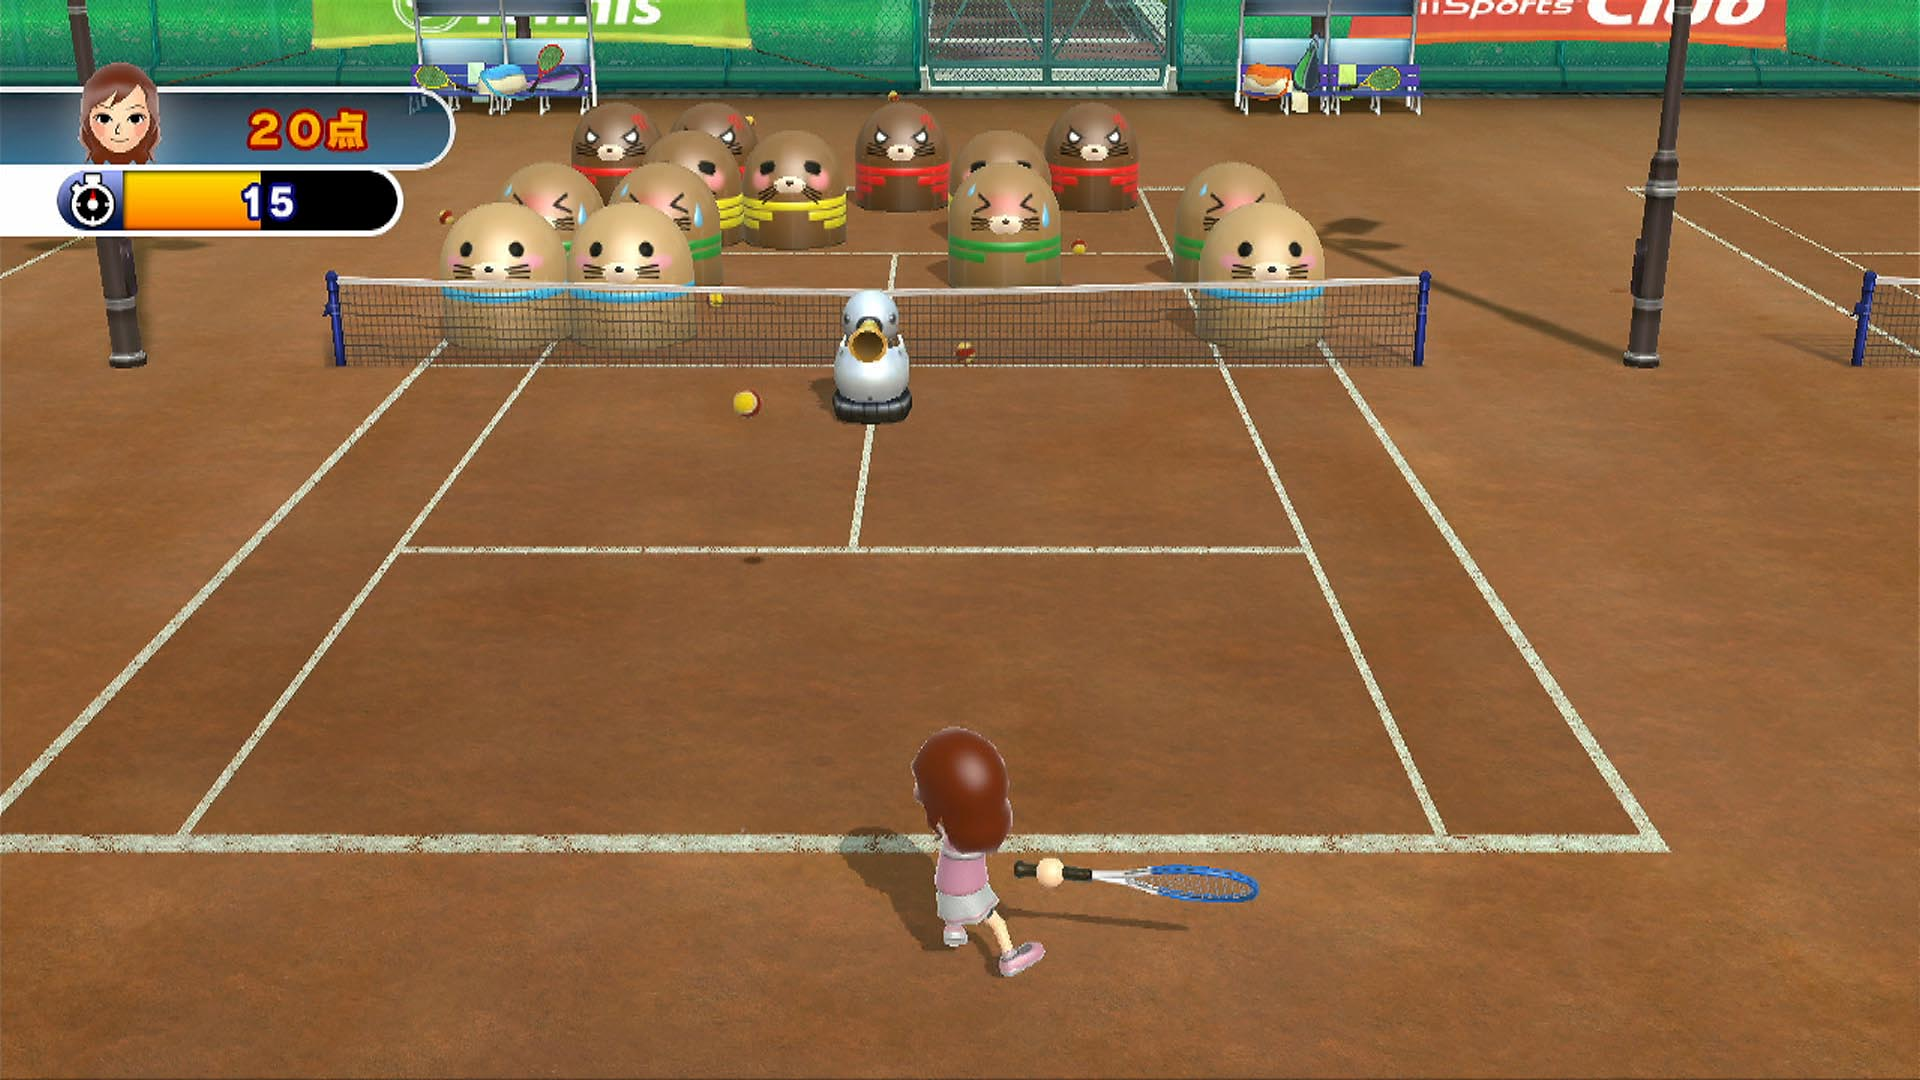 wii sports club gamerevolution goes later month